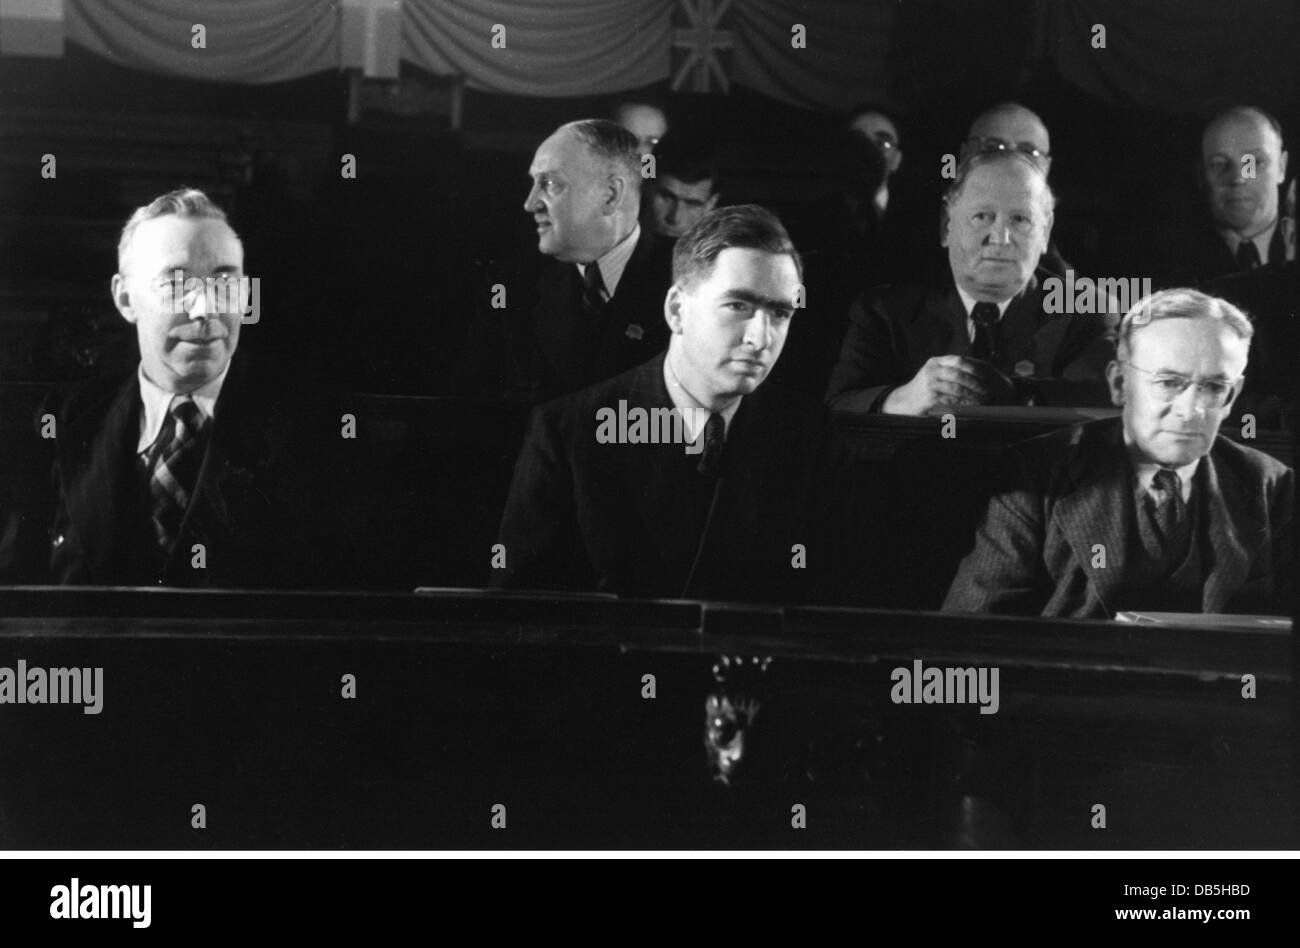 politics, International Socialists Congress, Vienna, 4.6.1948, Additional-Rights-Clearences-NA - Stock Image